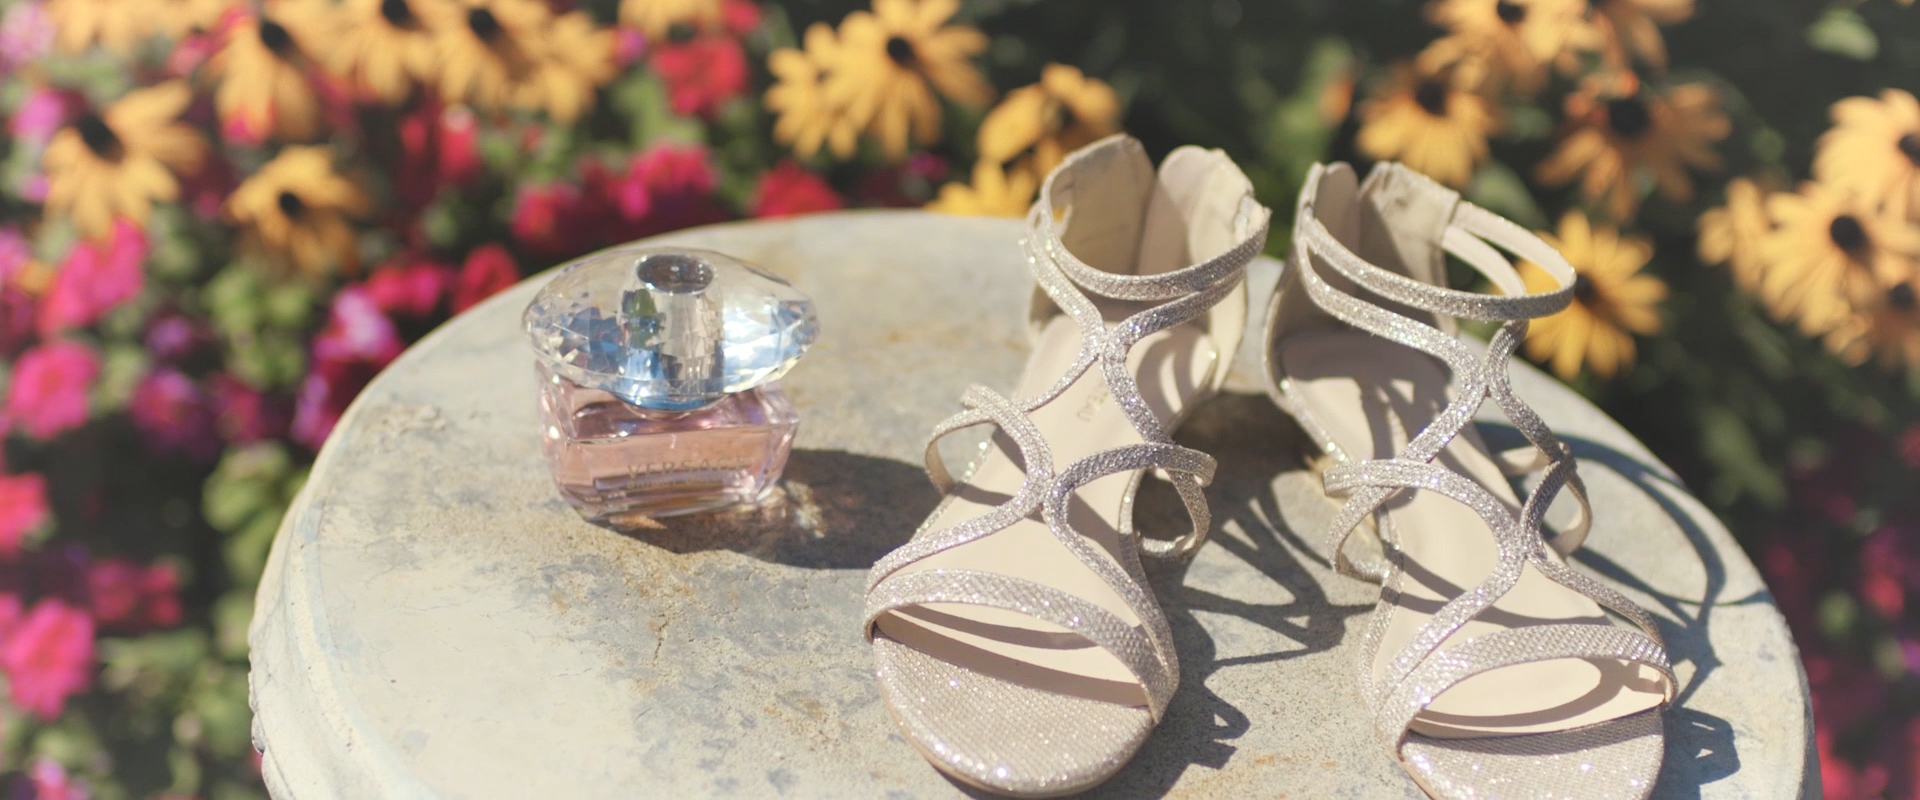 An image of a brides shoes and perfume on her wedding day; taken from a Toronto Wedding Video